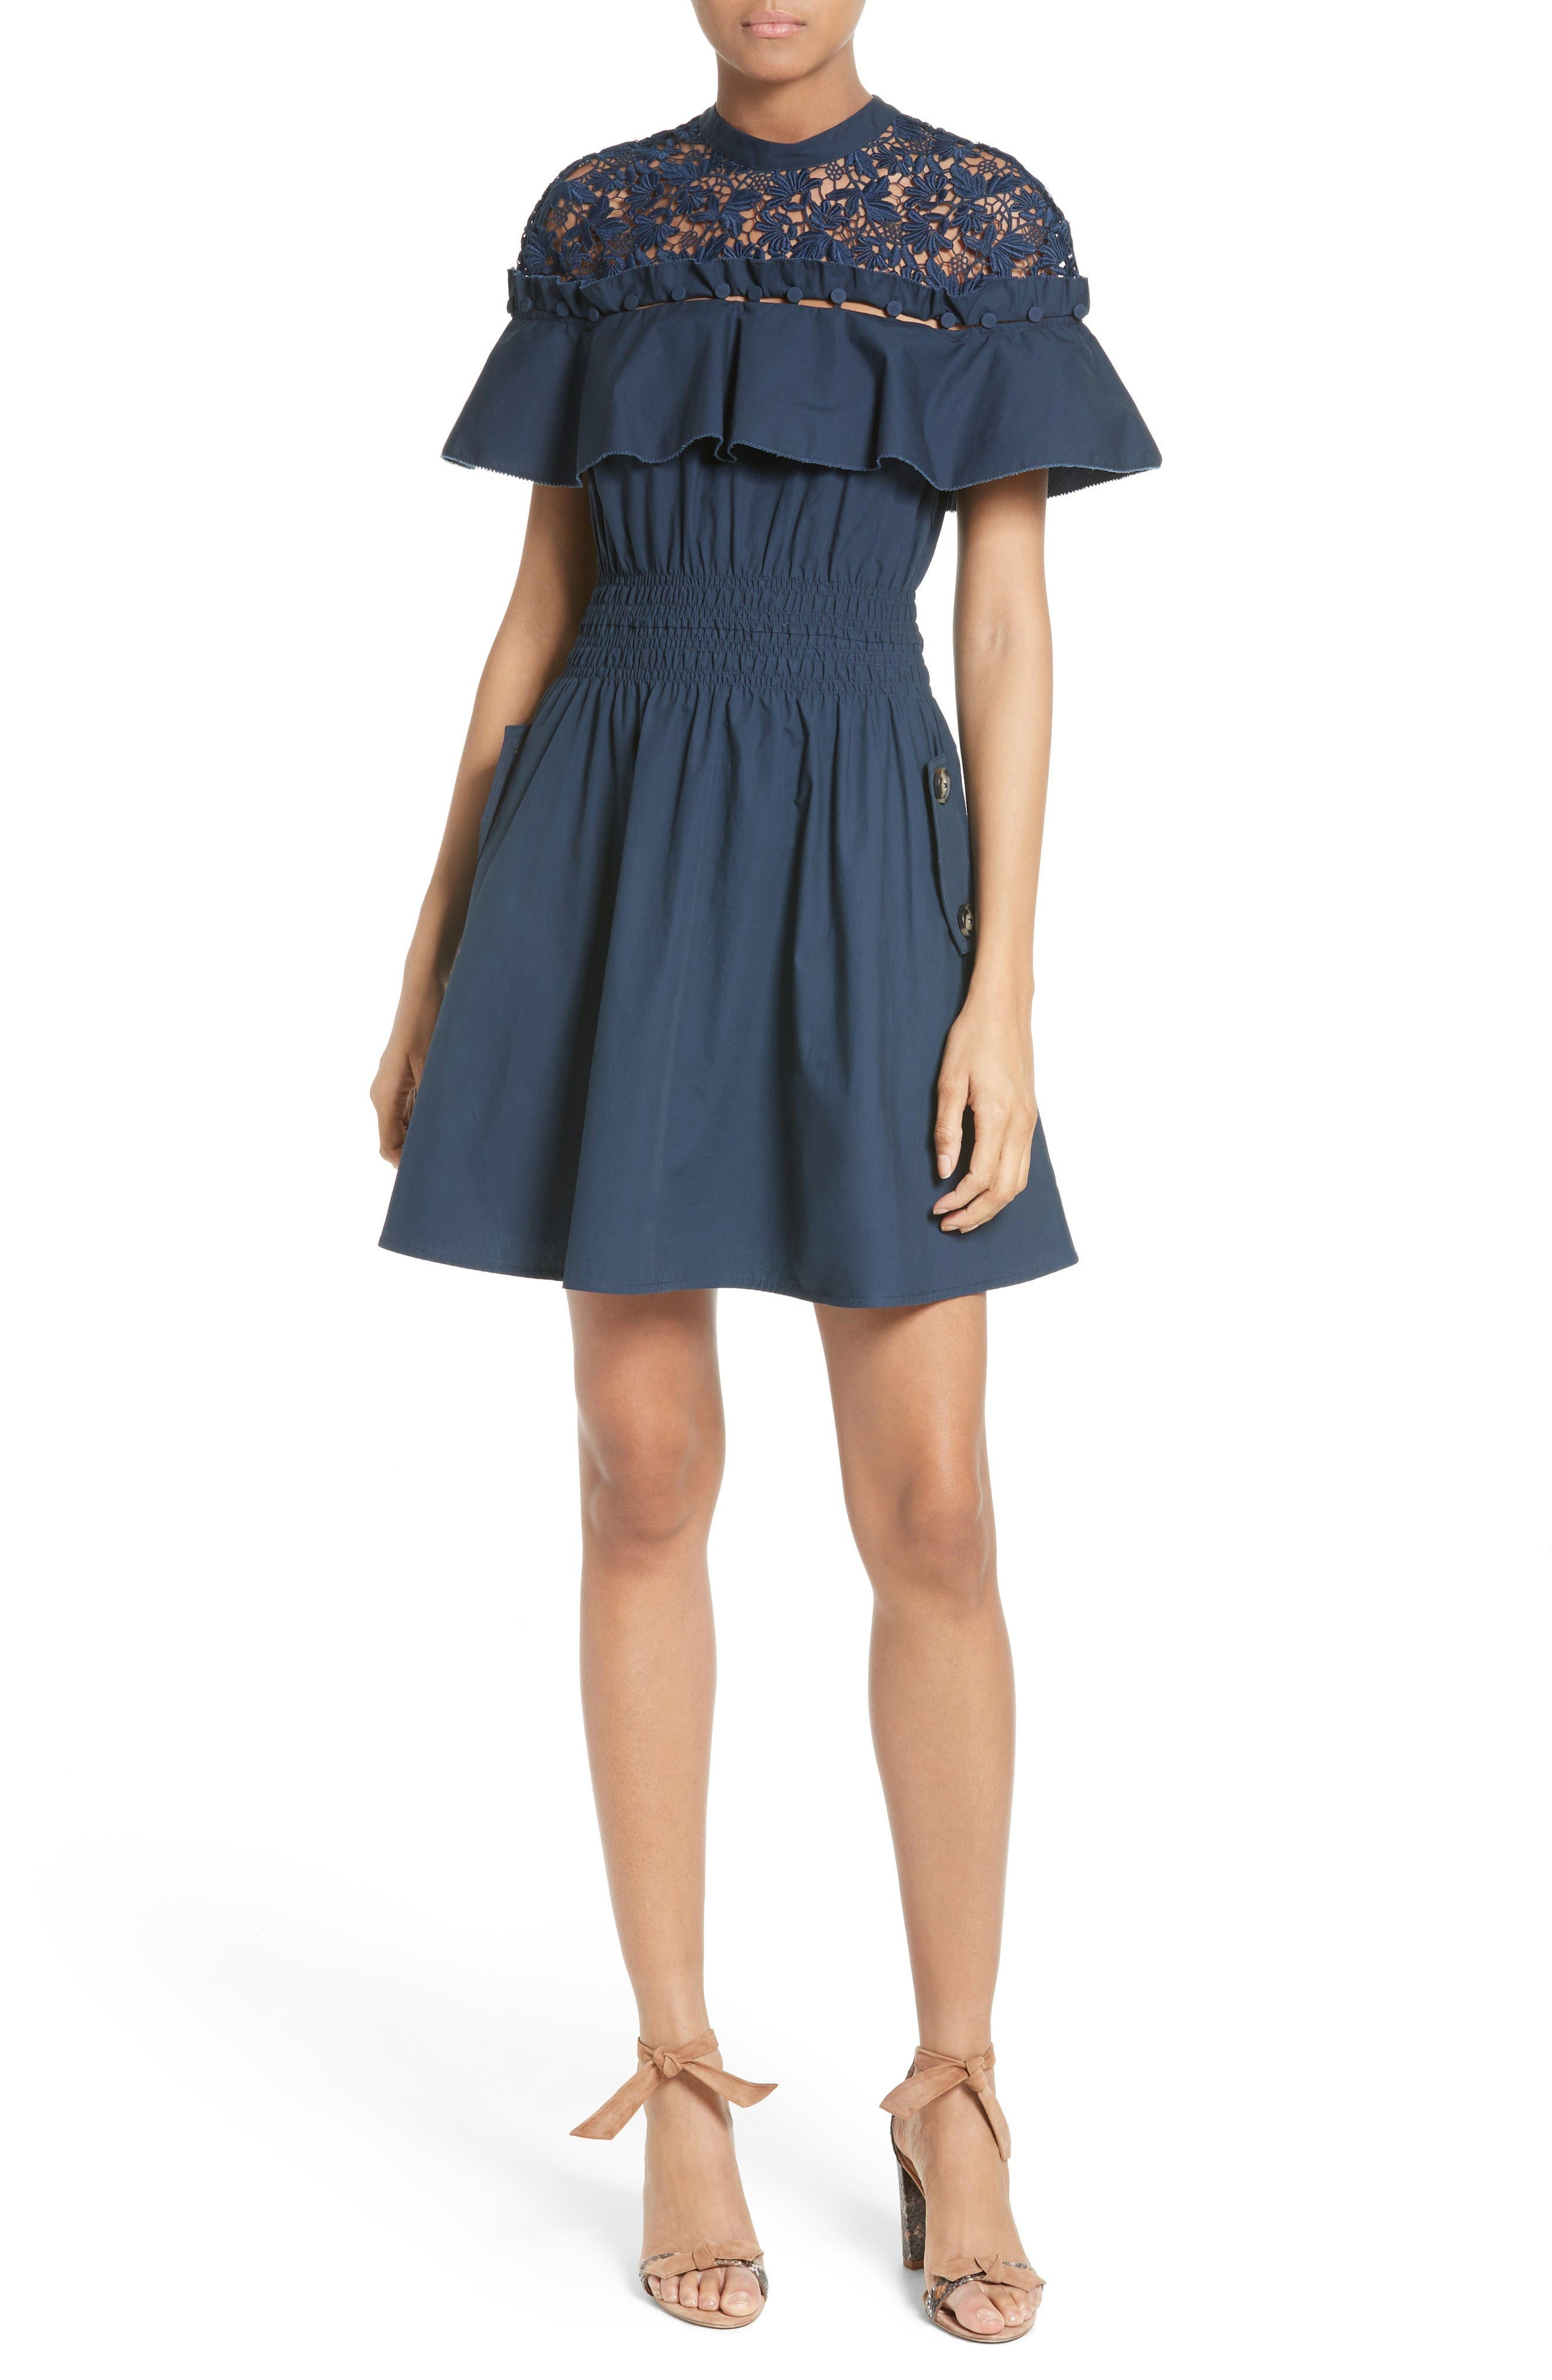 Alternate Image 1 Selected - Self-Portrait Hudson Ruffle Sleeve Fit & Flare Dress